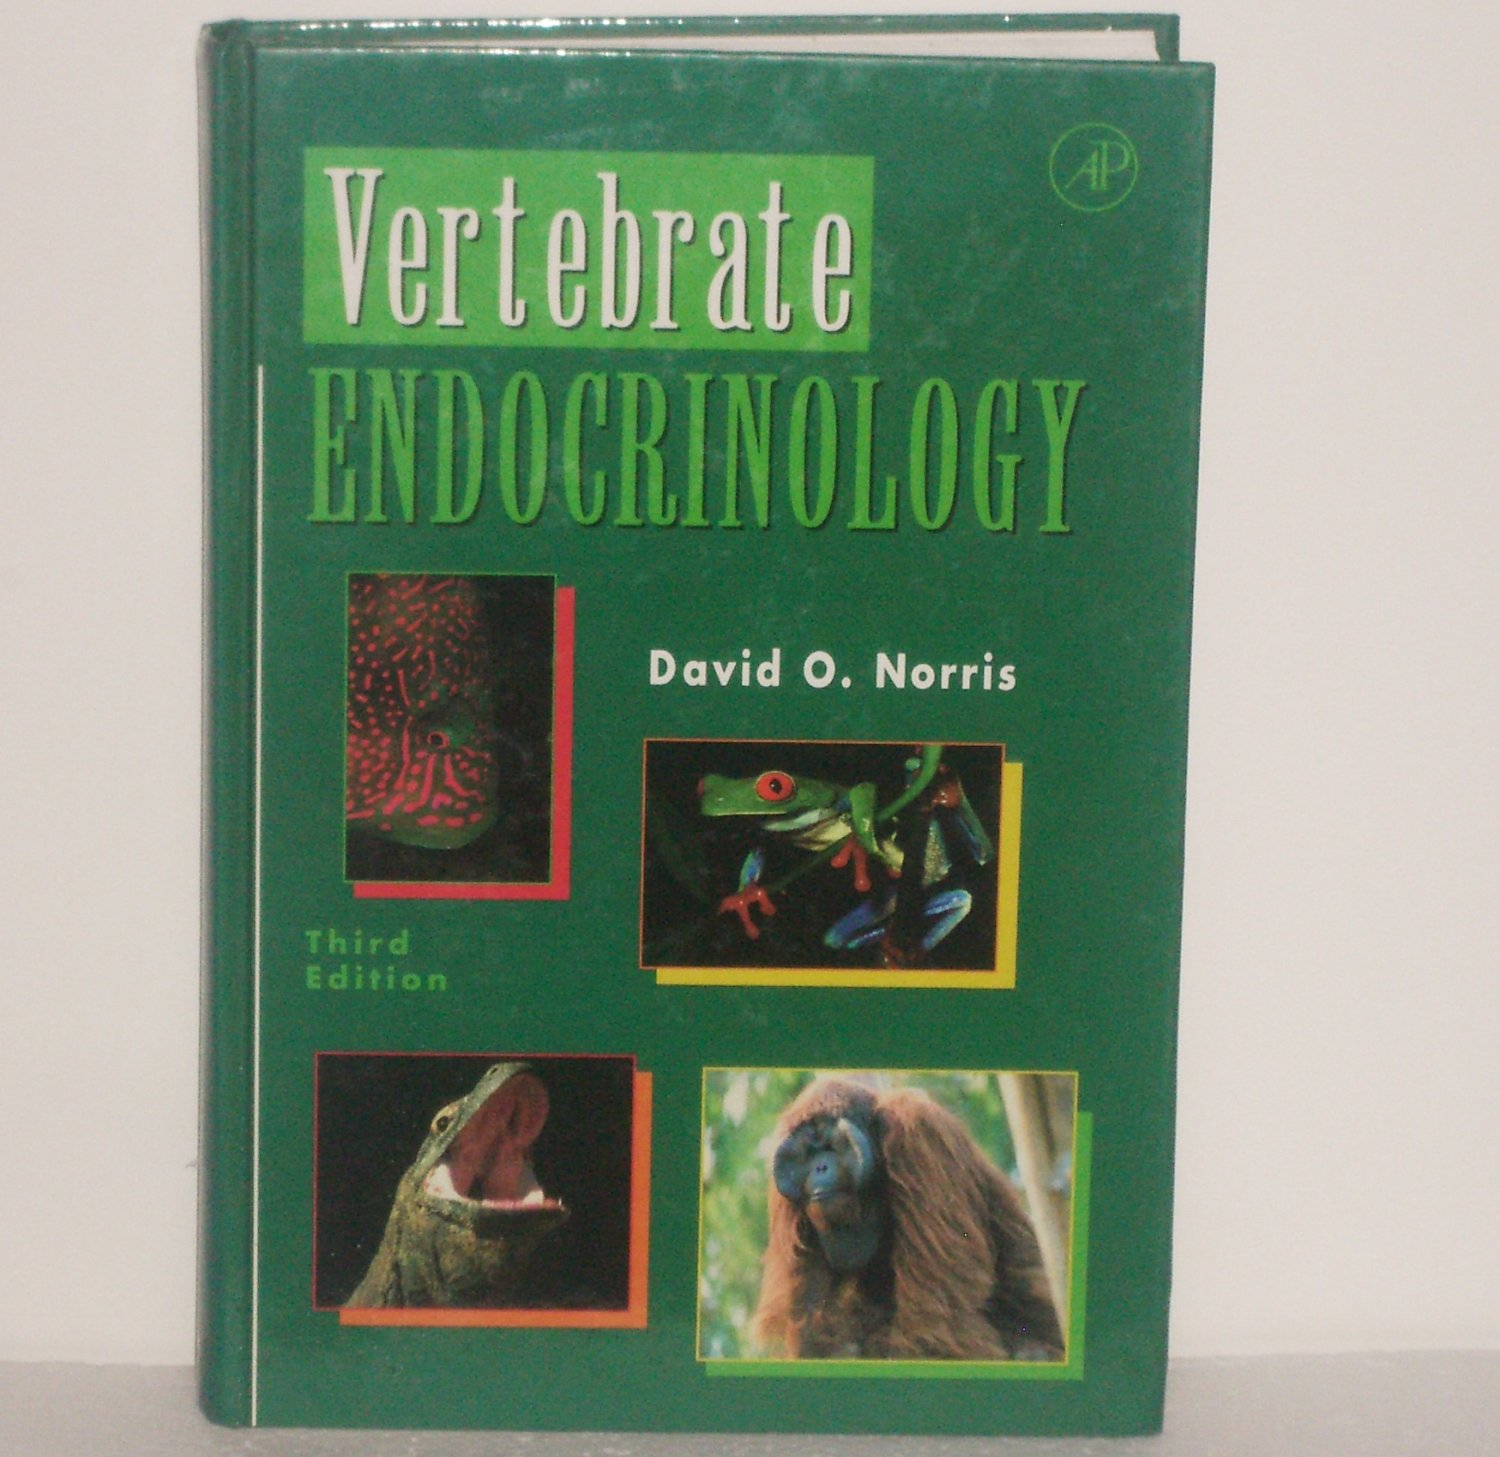 Vertebrate Endocrinology, Third Edition by DAVID O. NORRIS 1996 Hardcover